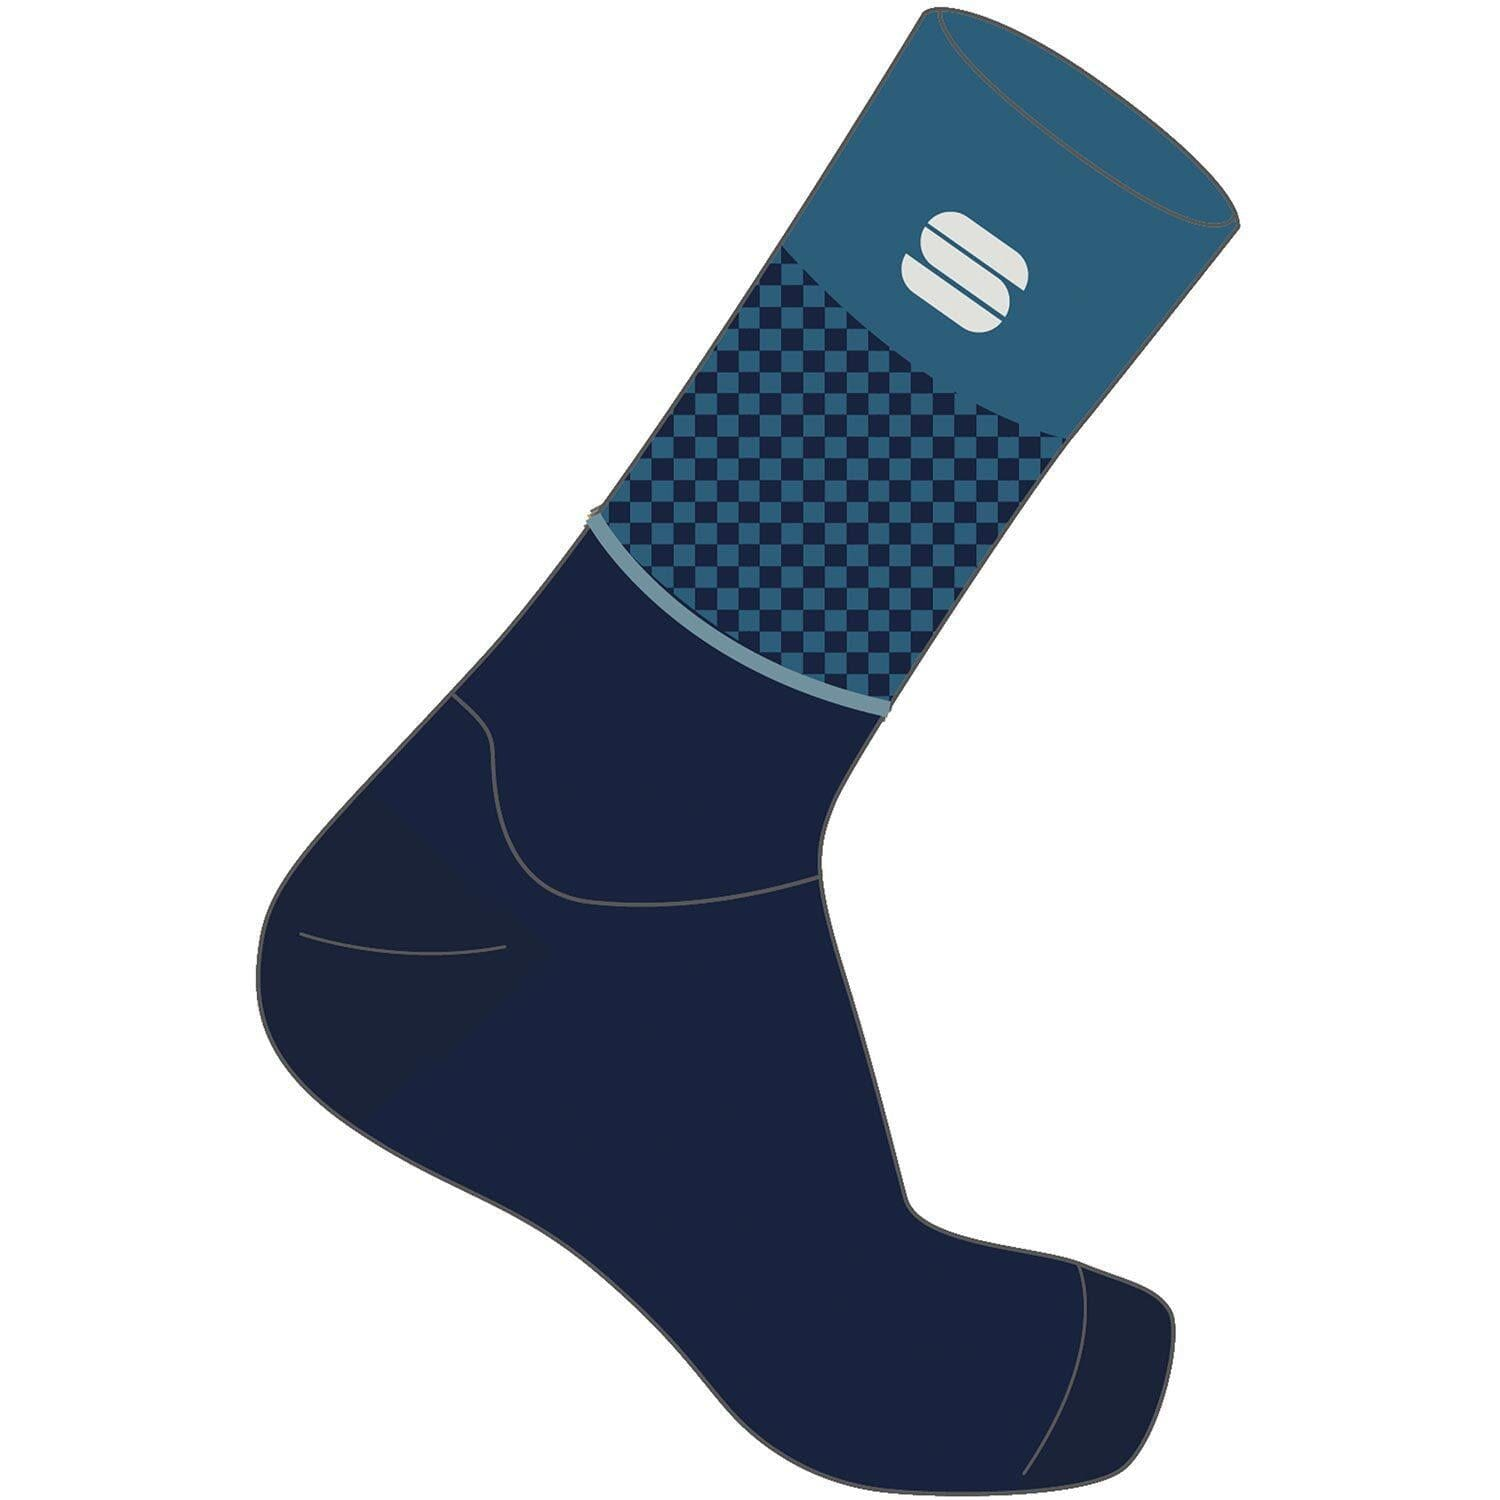 Sportful-Sportful Light Socks-Blue-S-SF2104101312-saddleback-elite-performance-cycling